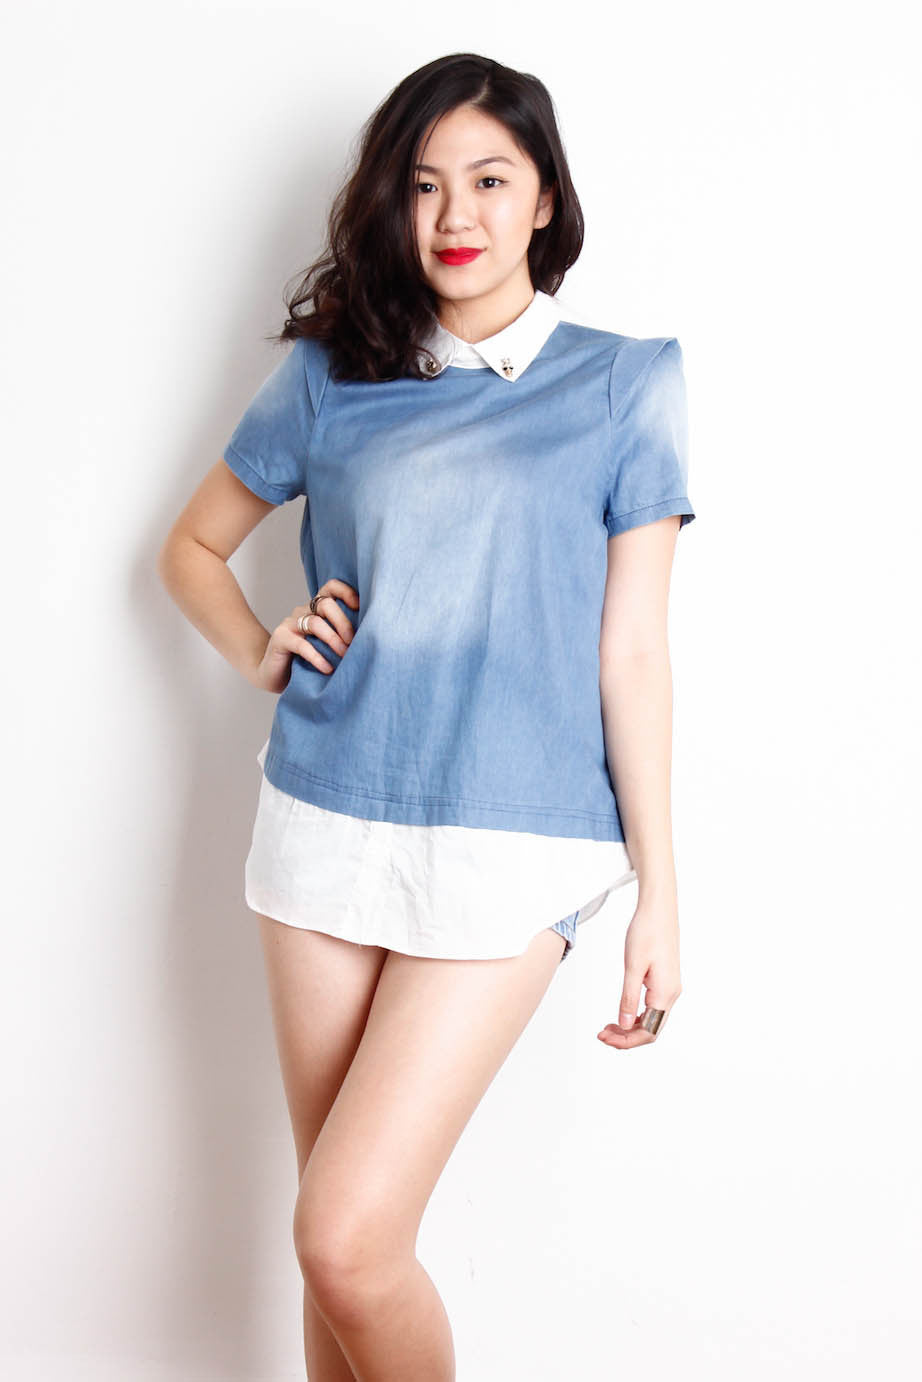 [FBC] Denim Blouse Tee